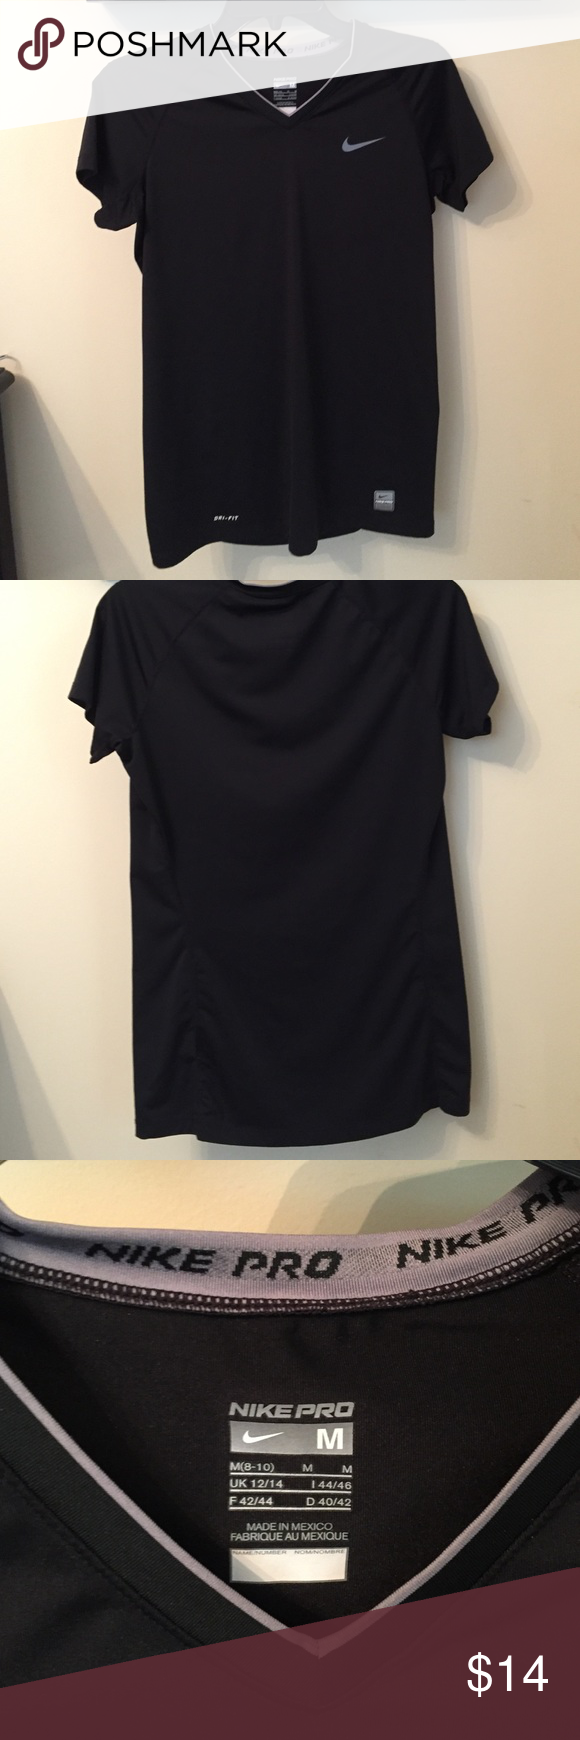 Black nike dri-fit shirt Black nike dri-fit shirt.  Worn but in good condition. 94% polyester and 6% spandex  has a stretch to it Nike Tops Tees - Short Sleeve